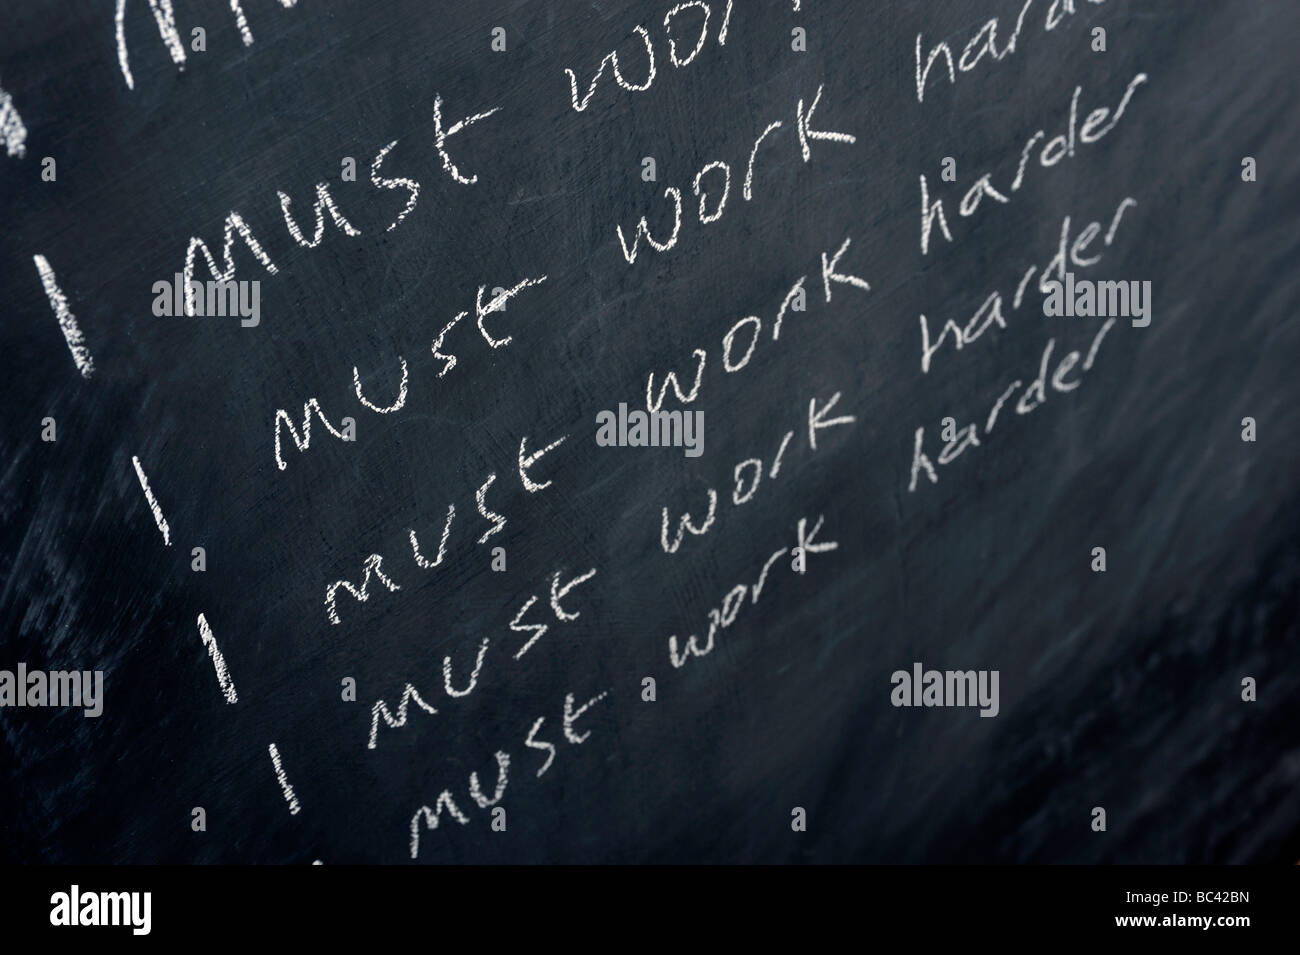 Blackboard Stockbild